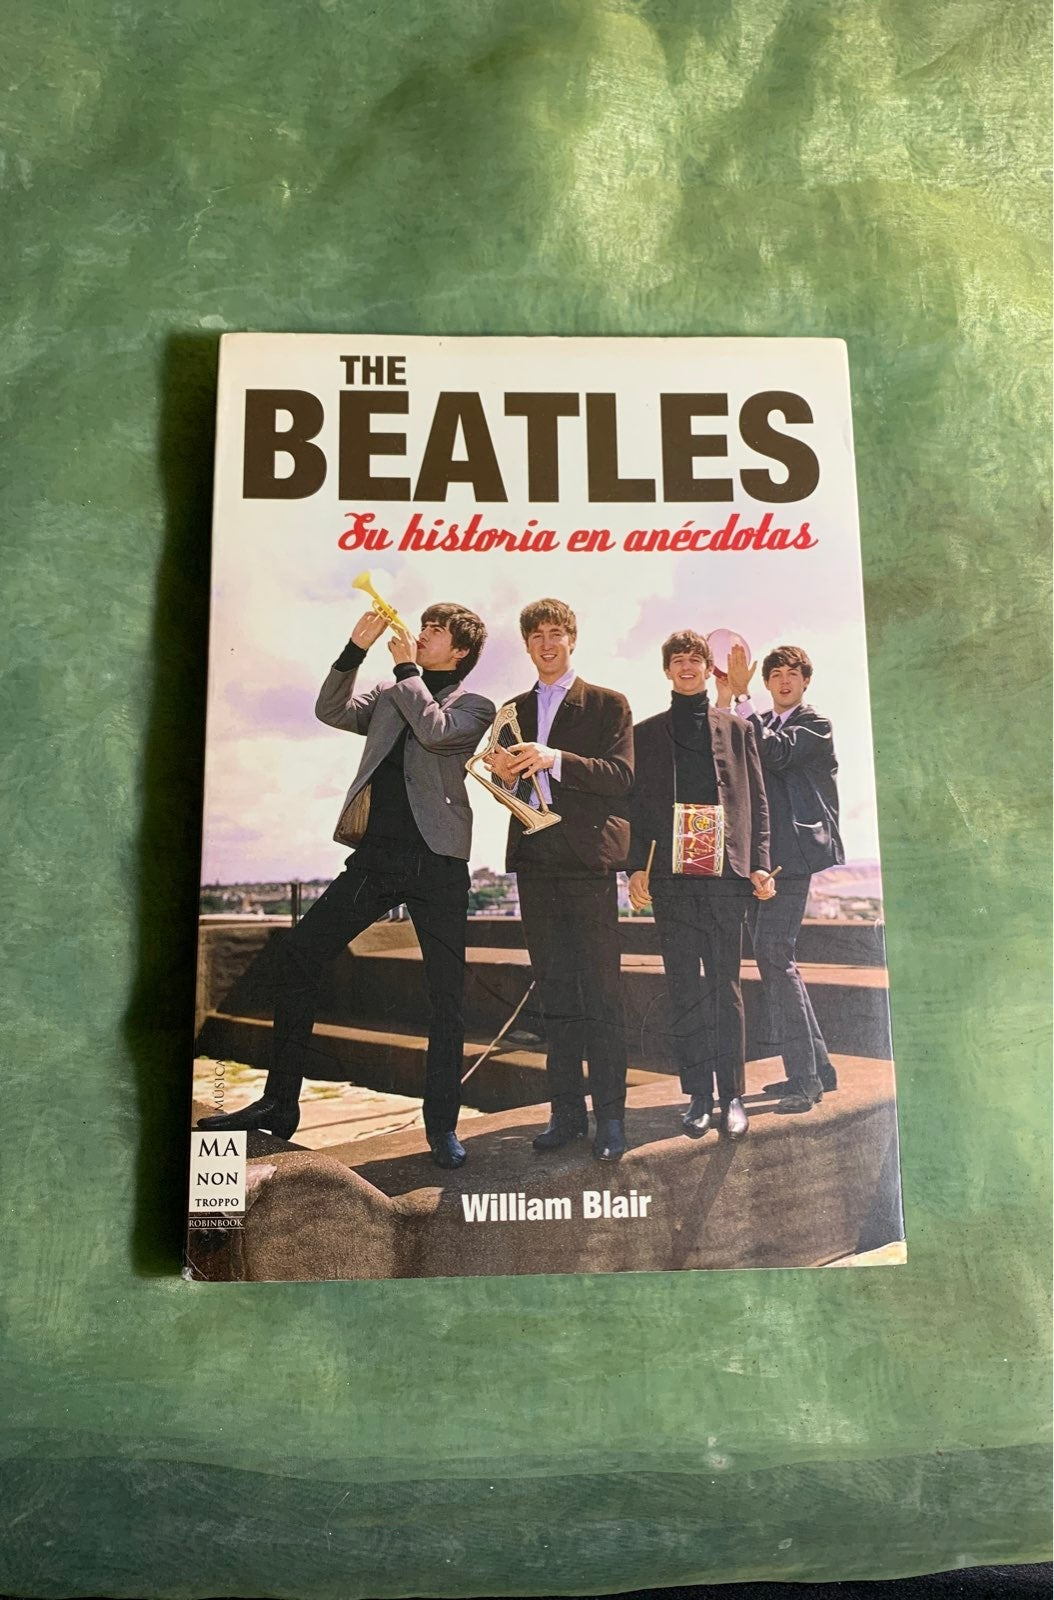 The Beatles Spanish/En Espanol book